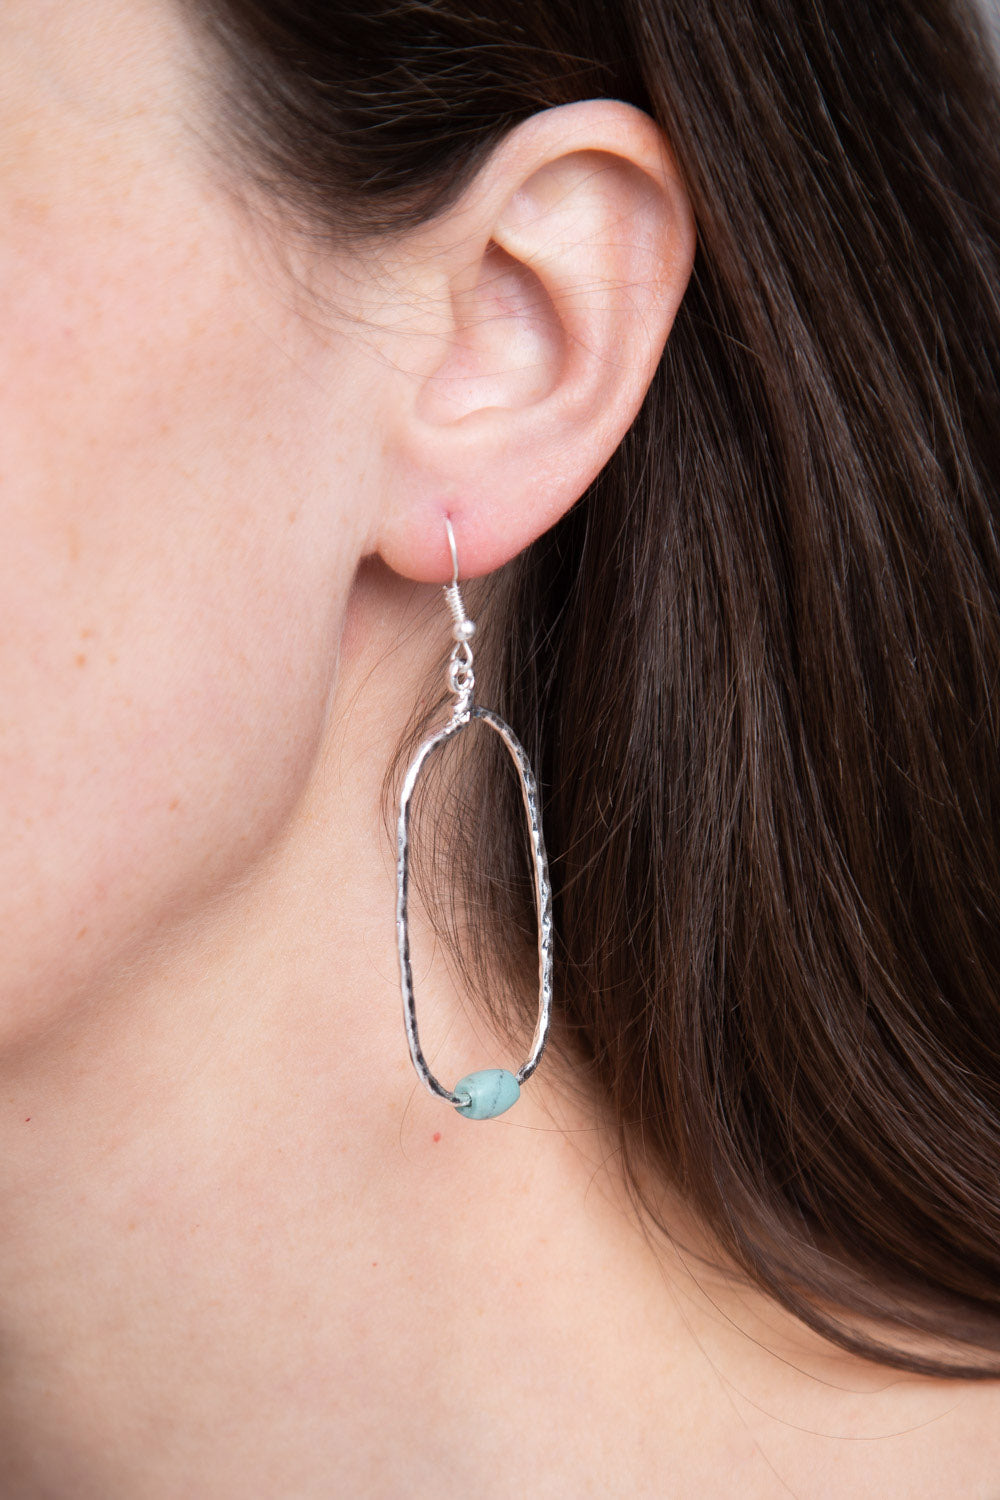 Type 2 Holding it Close Earrings